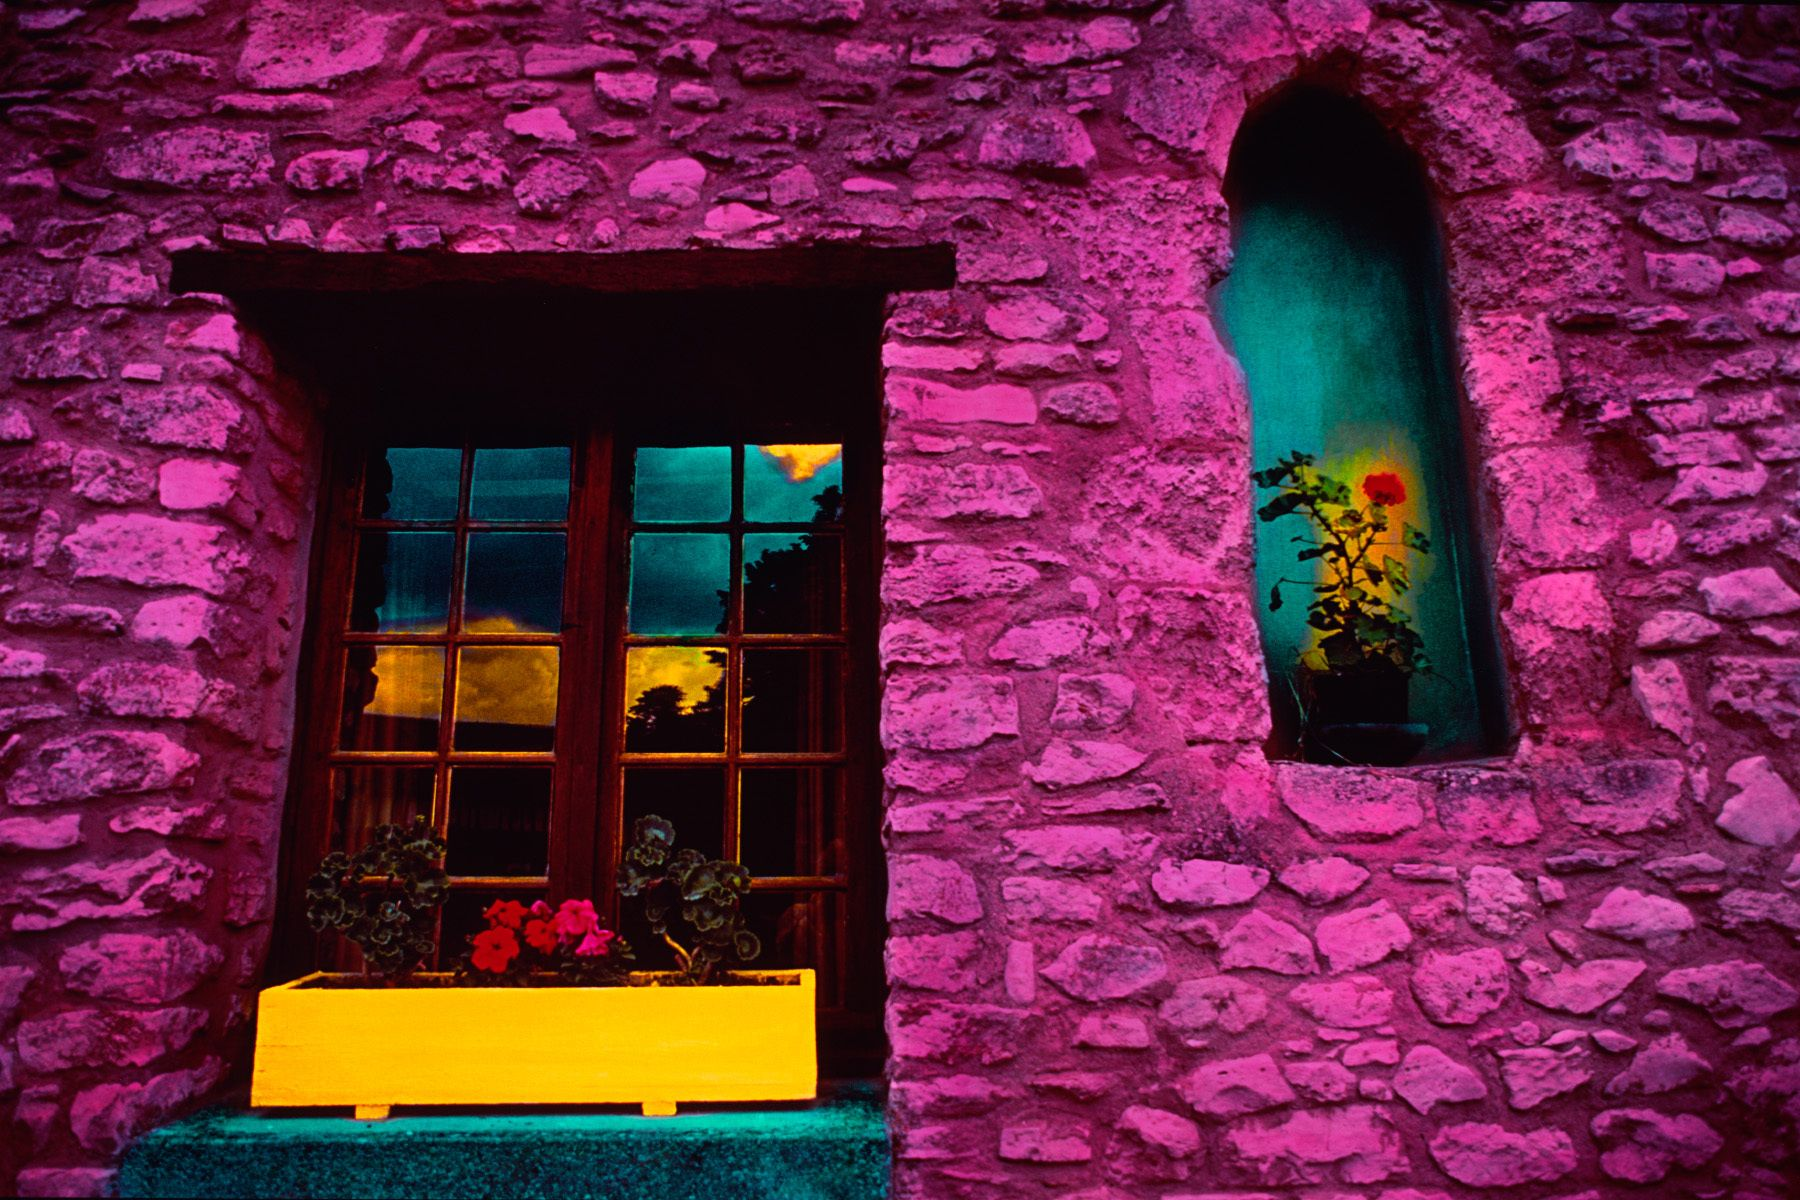 8_0_133_1i_janegottlieb_frenchstone_window_box_nook1.jpg